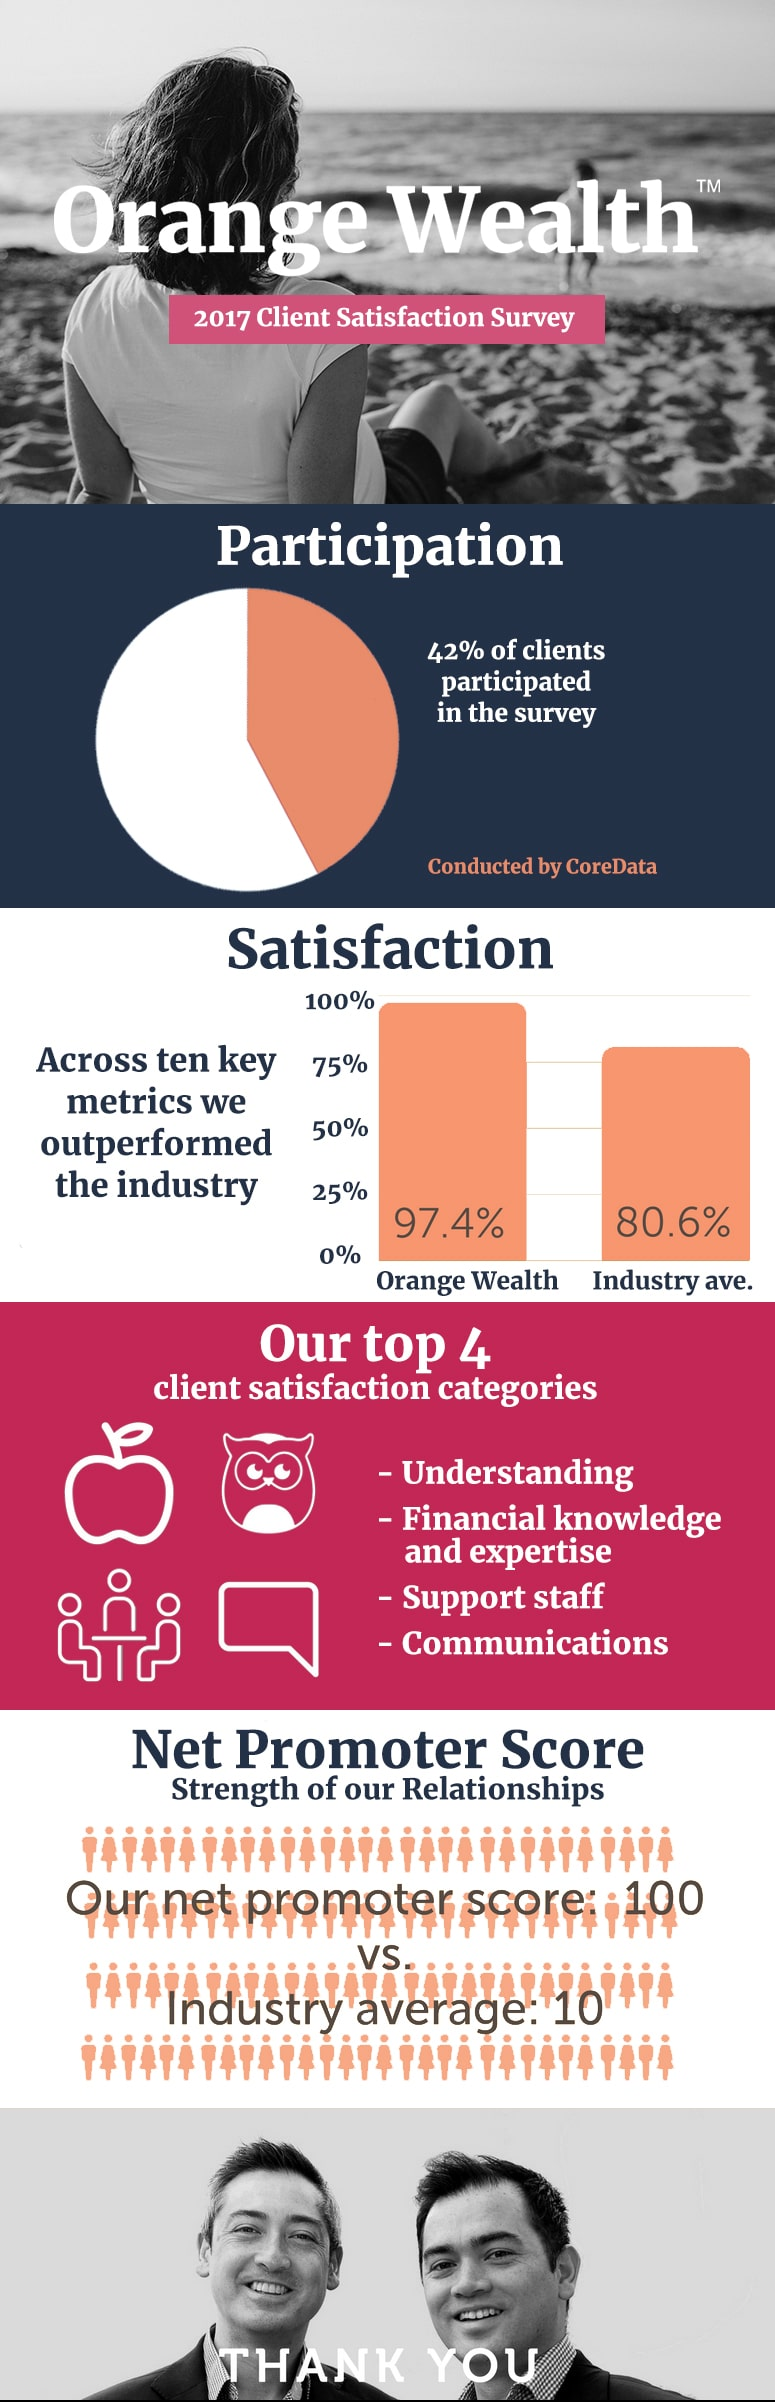 orange wealth client satisfaction survey